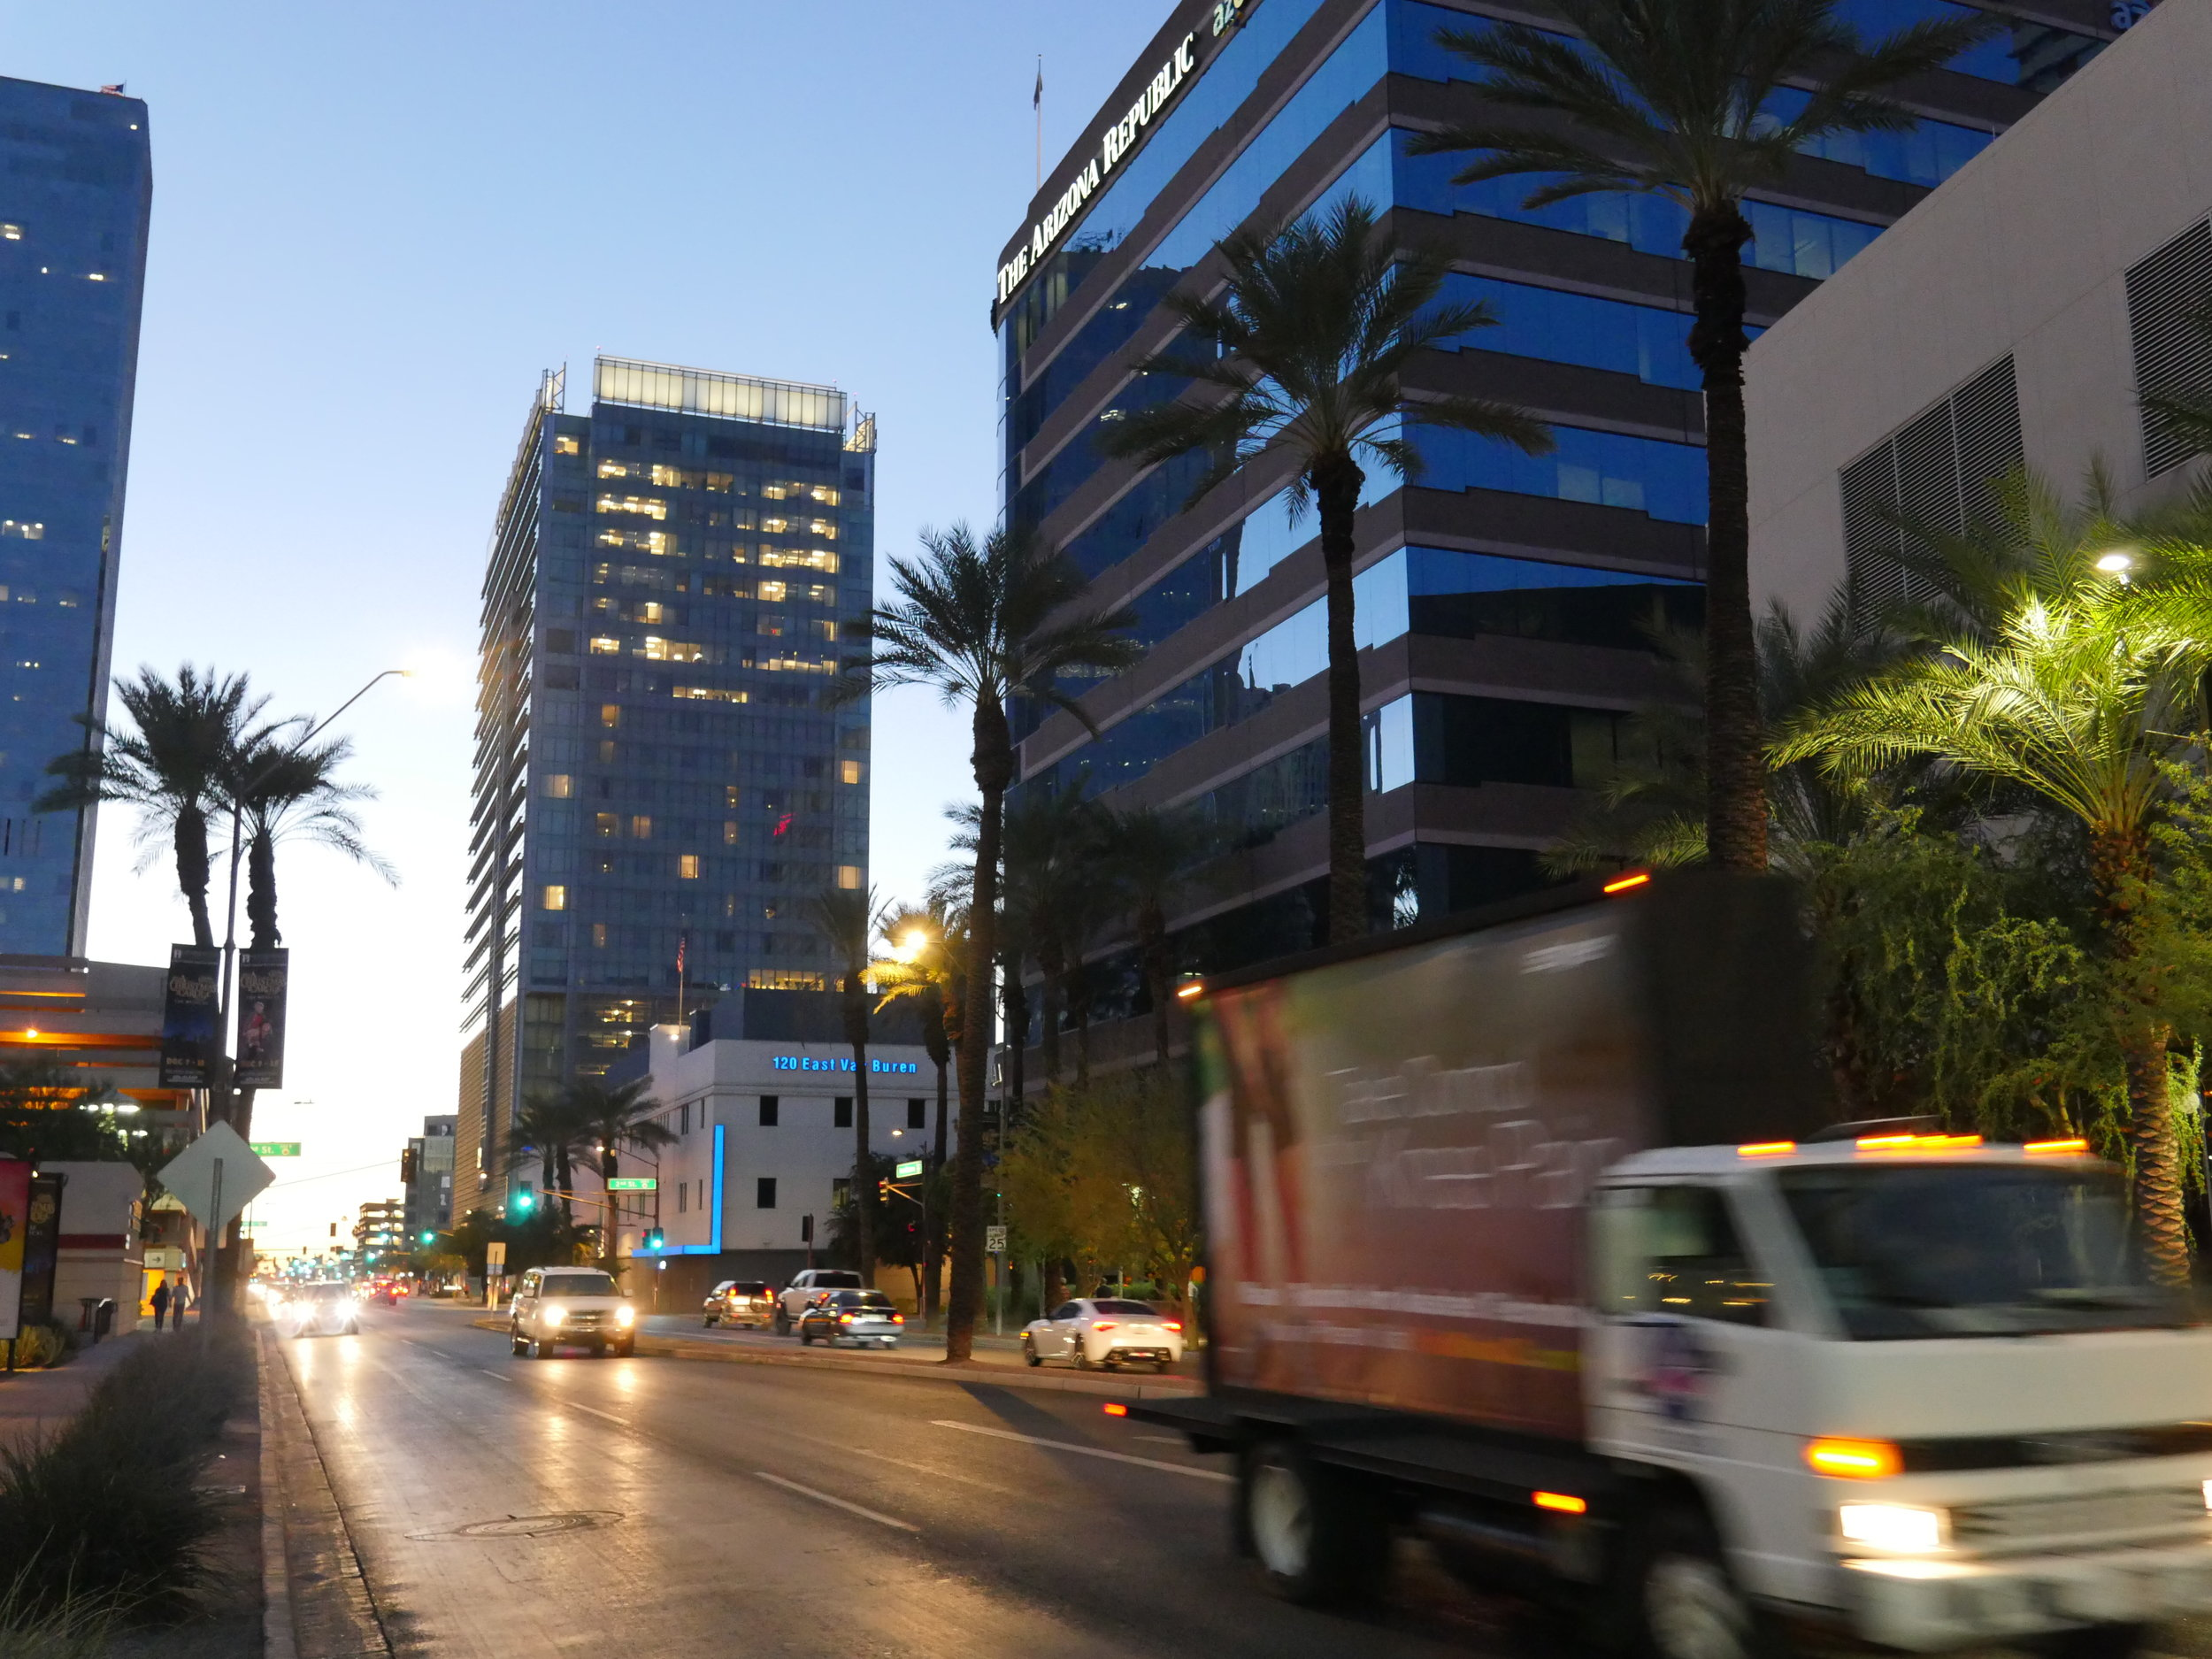 Traffic whizzes past the Arizona Republic Building on Nov. 18, 2017 in Downtown Phoenix.